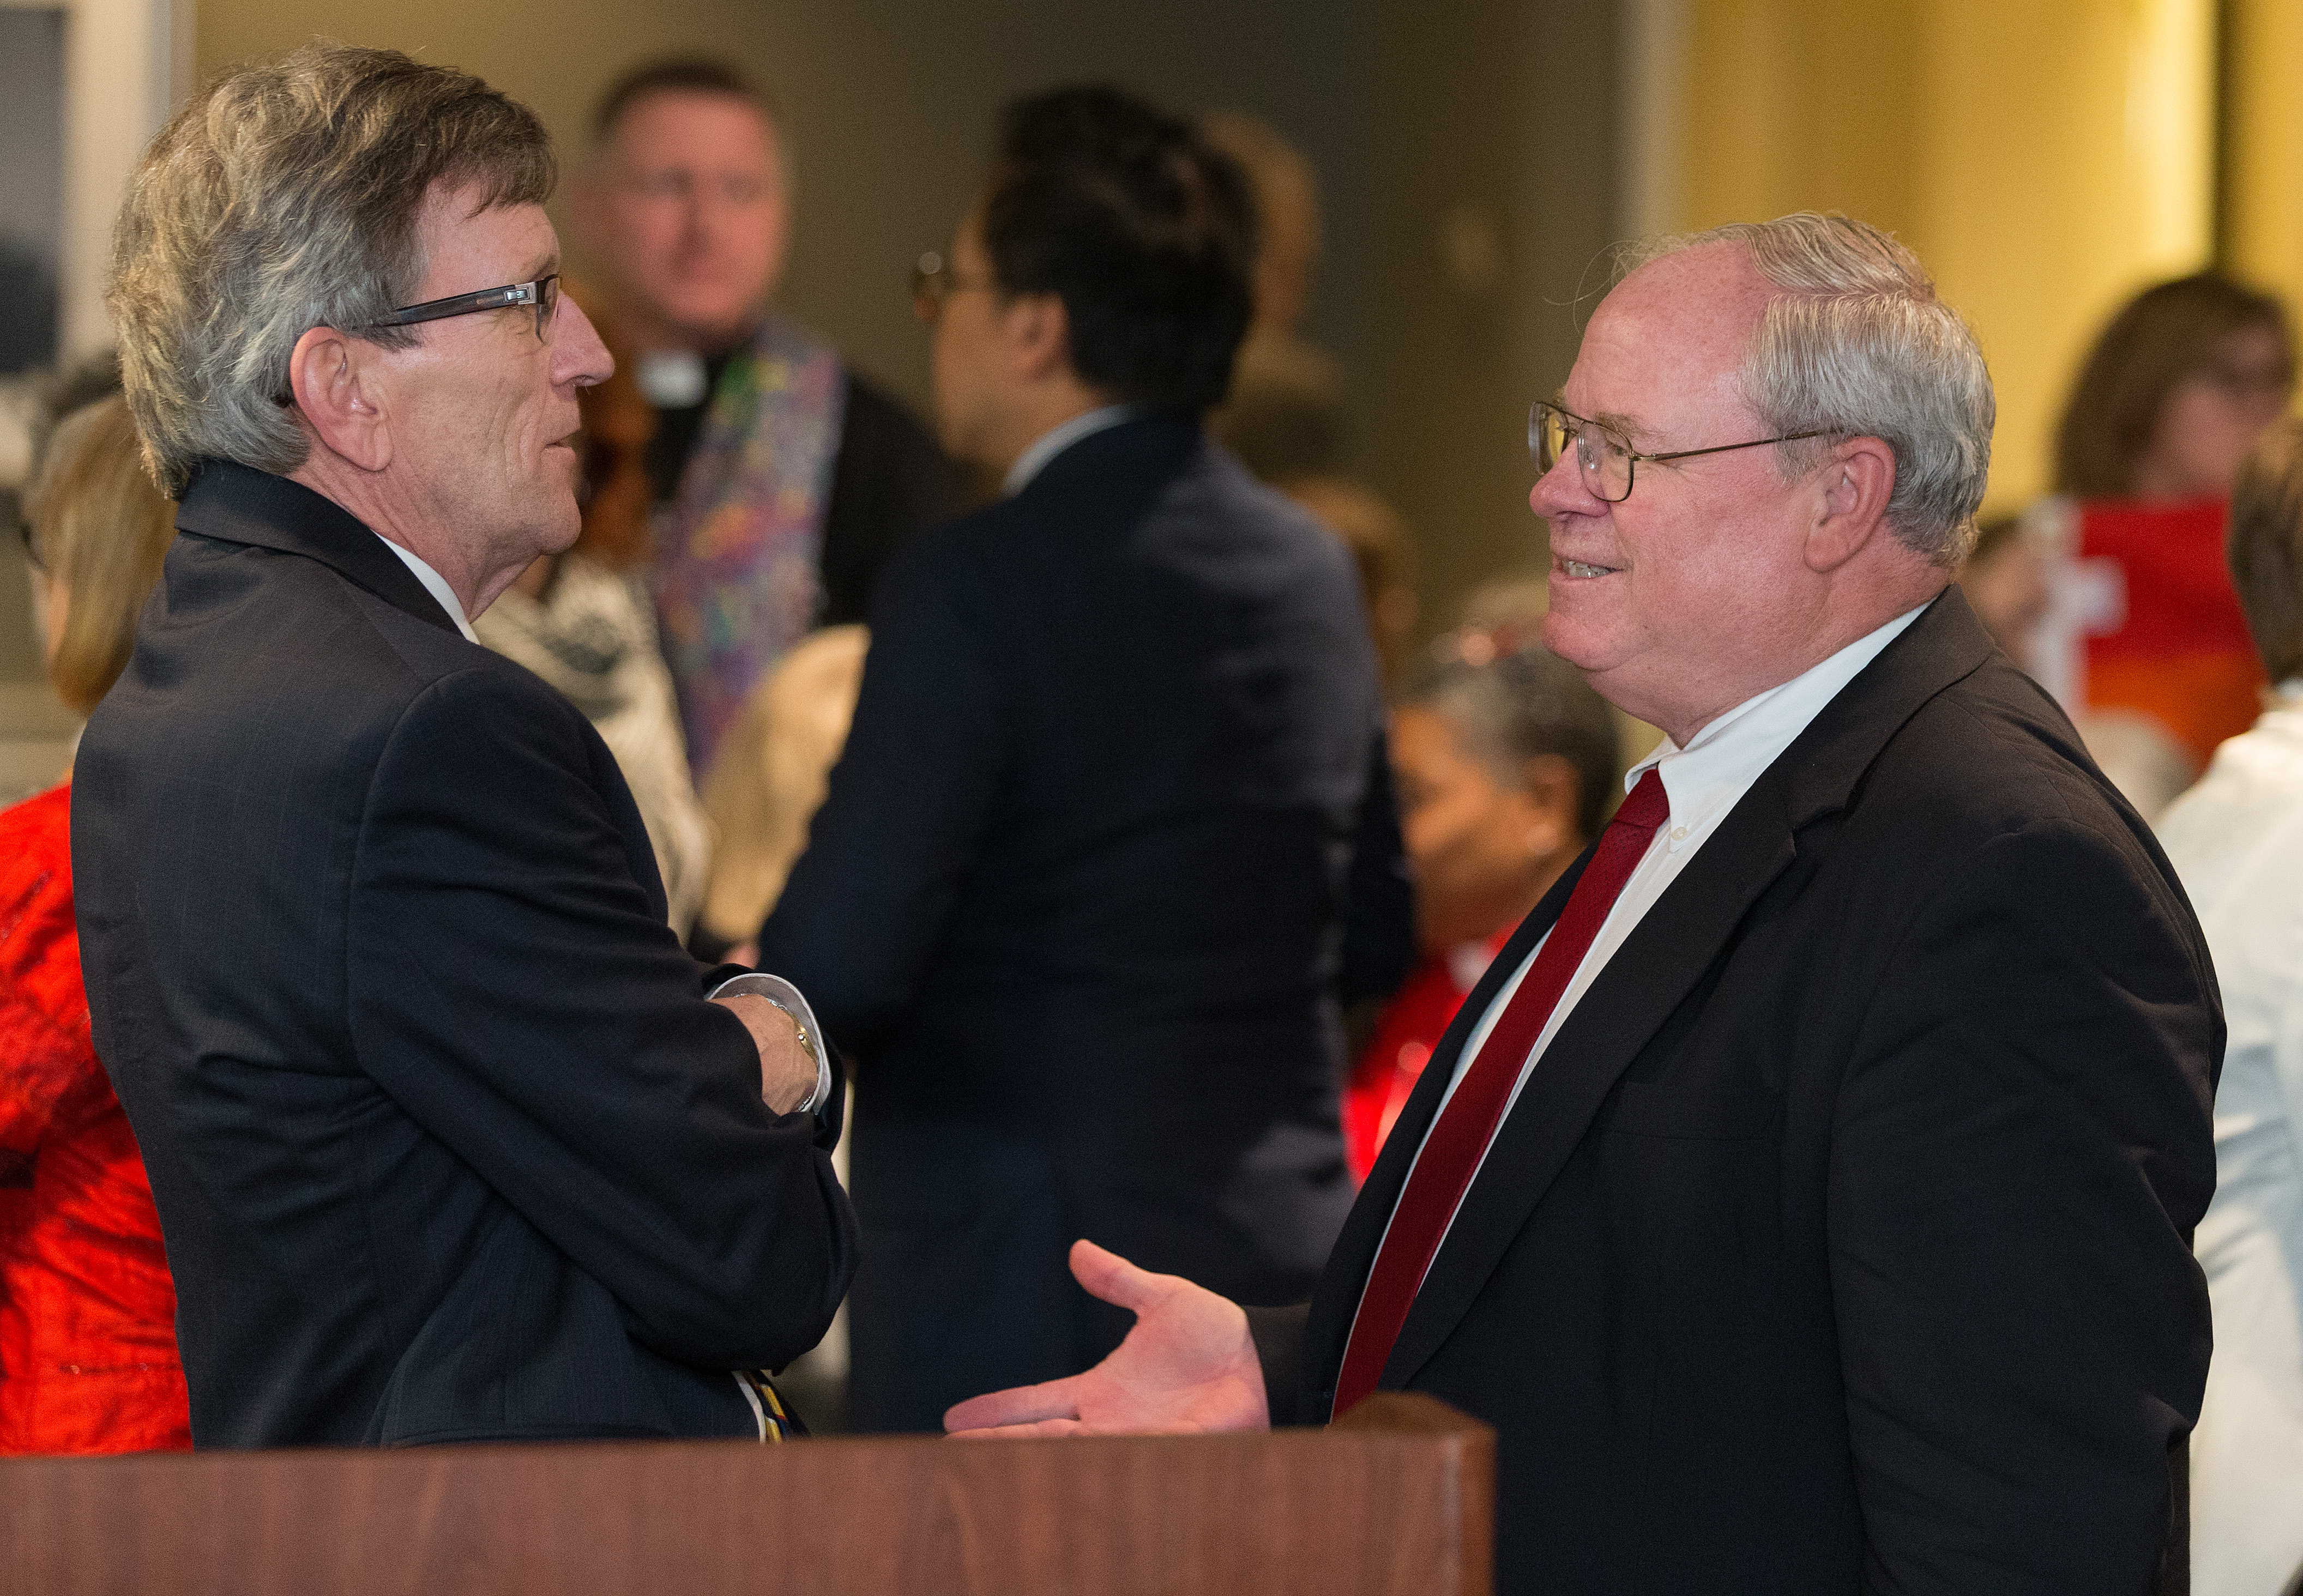 Richard A. Marsh (left) and the Rev. Keith Boyette visit one another after making oral arguments about whether a gay pastor can serve as a bishop in The United Methodist Church before the United Methodist Judicial Council, meeting in Newark, N.J., on April 25. The two argued opposite sides of the issue. Photo by Mike DuBose, UMNS.